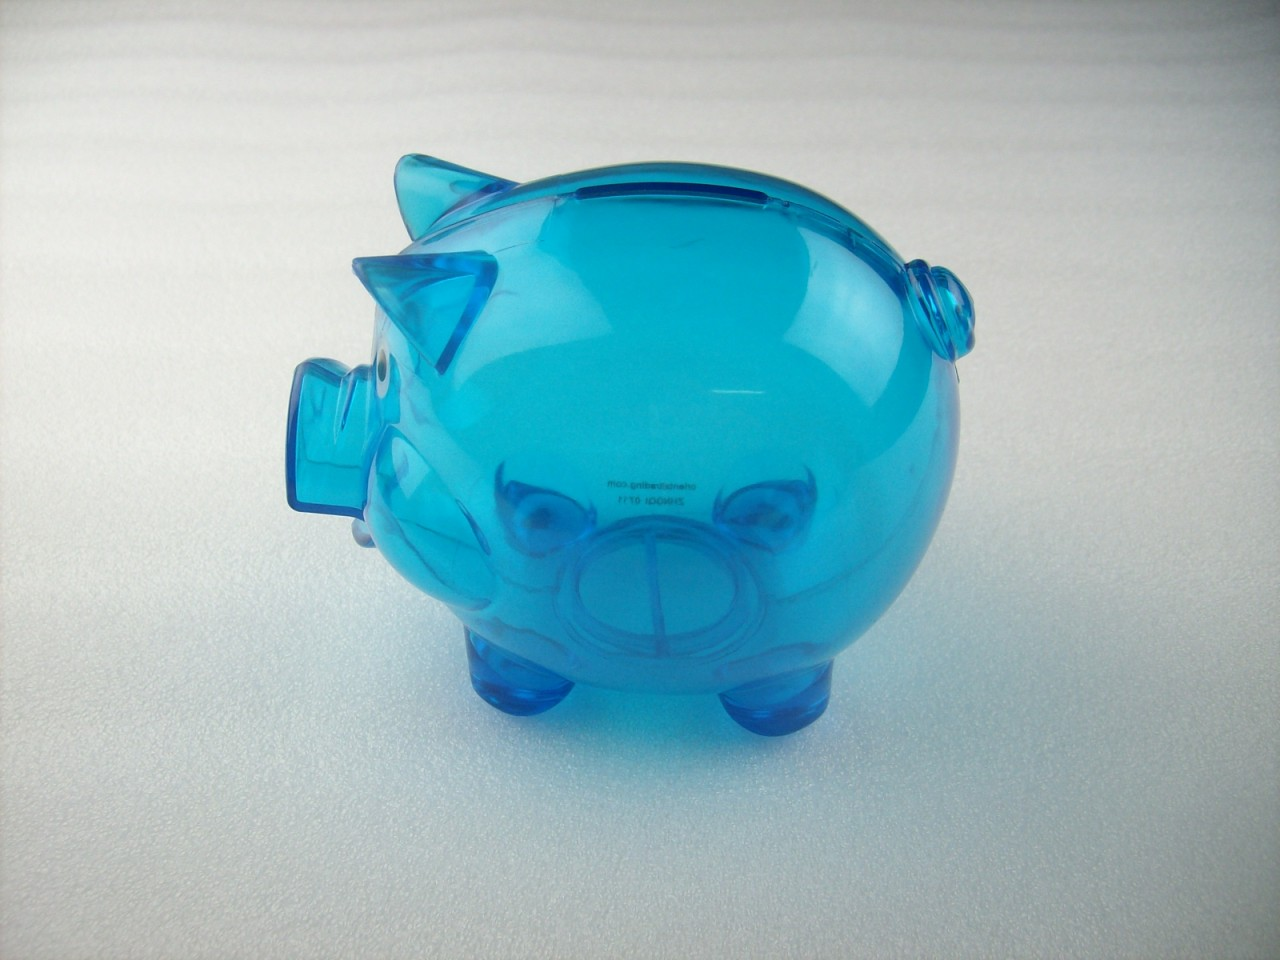 how to open a plastic piggy bank